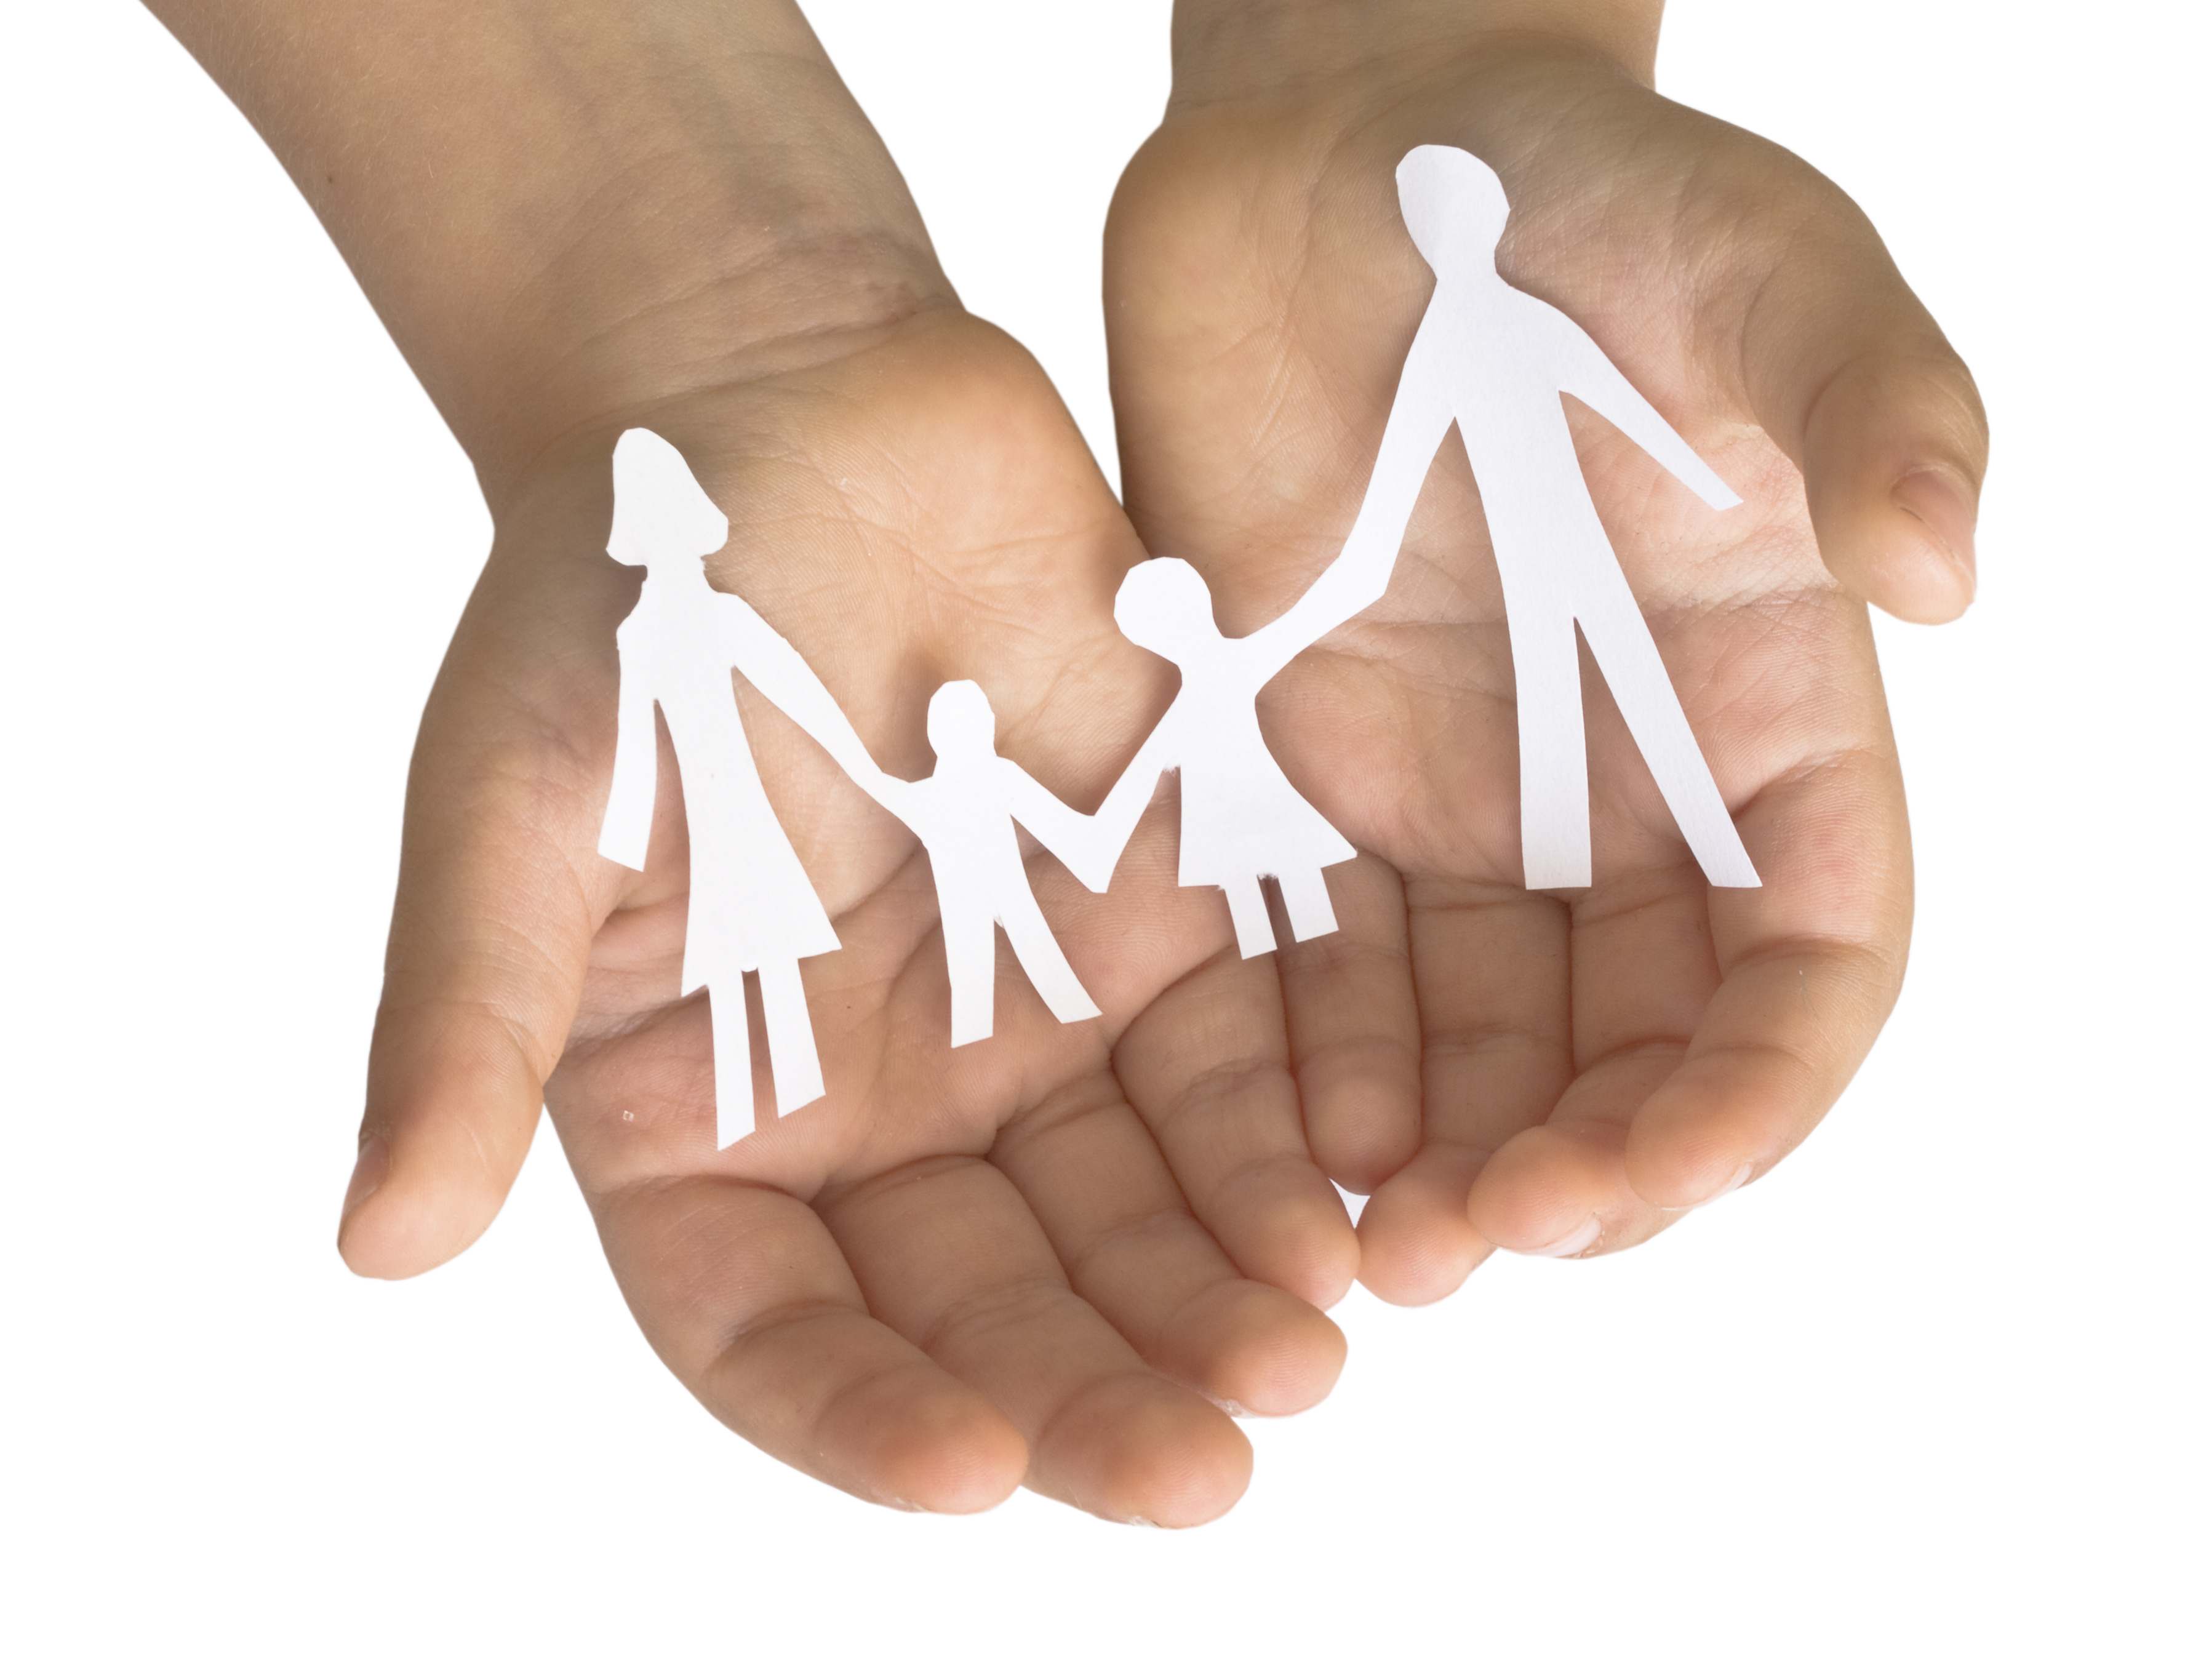 http://www.vienna-ivf.com/files/6313/5028/2848/bigstock-family-in-child-s-hands-26808509.jpg